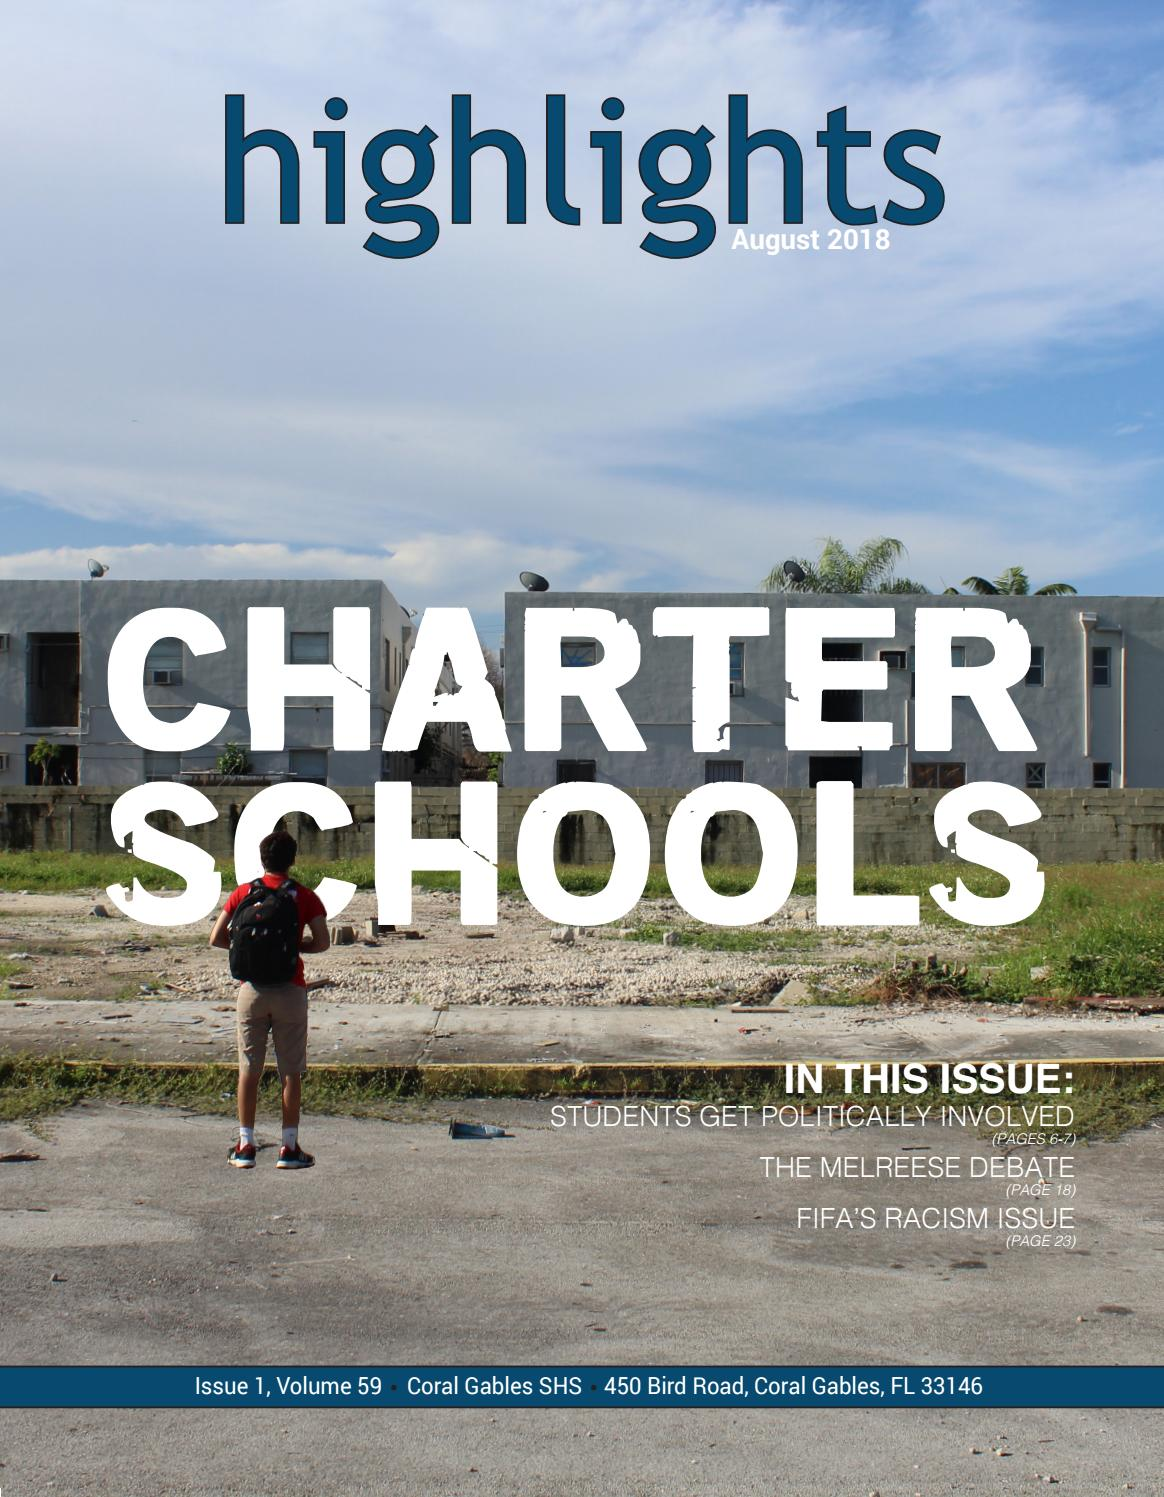 Vol Charter Issue 1 Vol 59 By Highlights Issuu